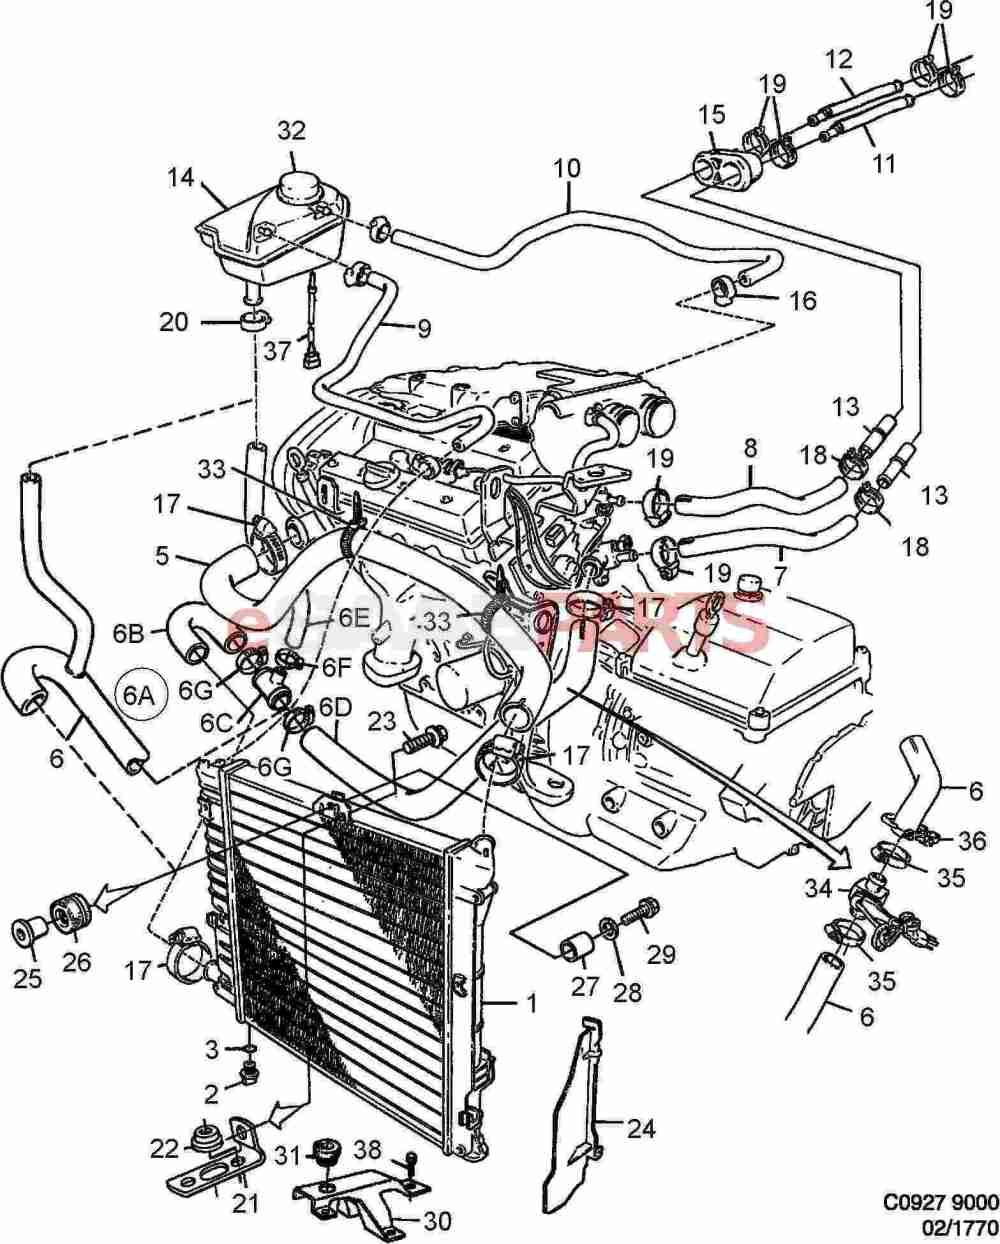 medium resolution of 2003 mercury mountaineer engine diagram